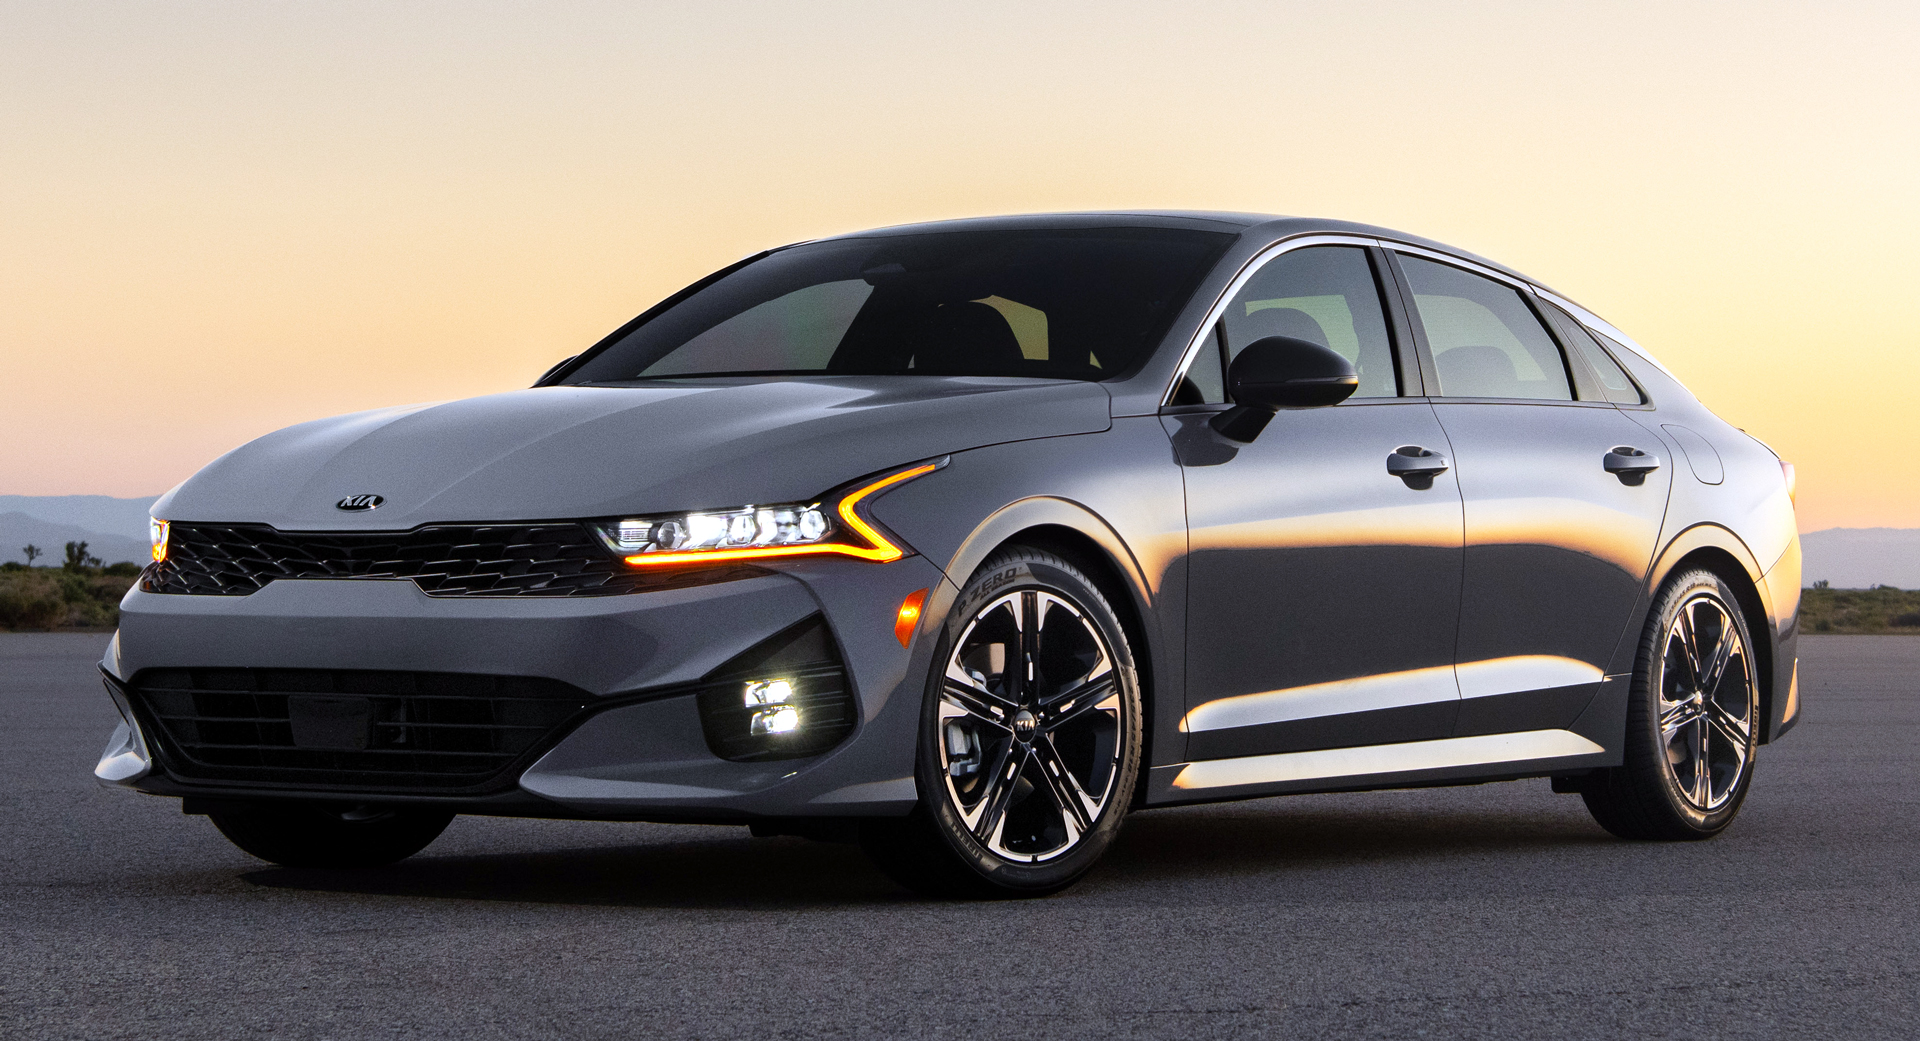 2021 kia k5 rated at up to 32 mpg combined  carscoops